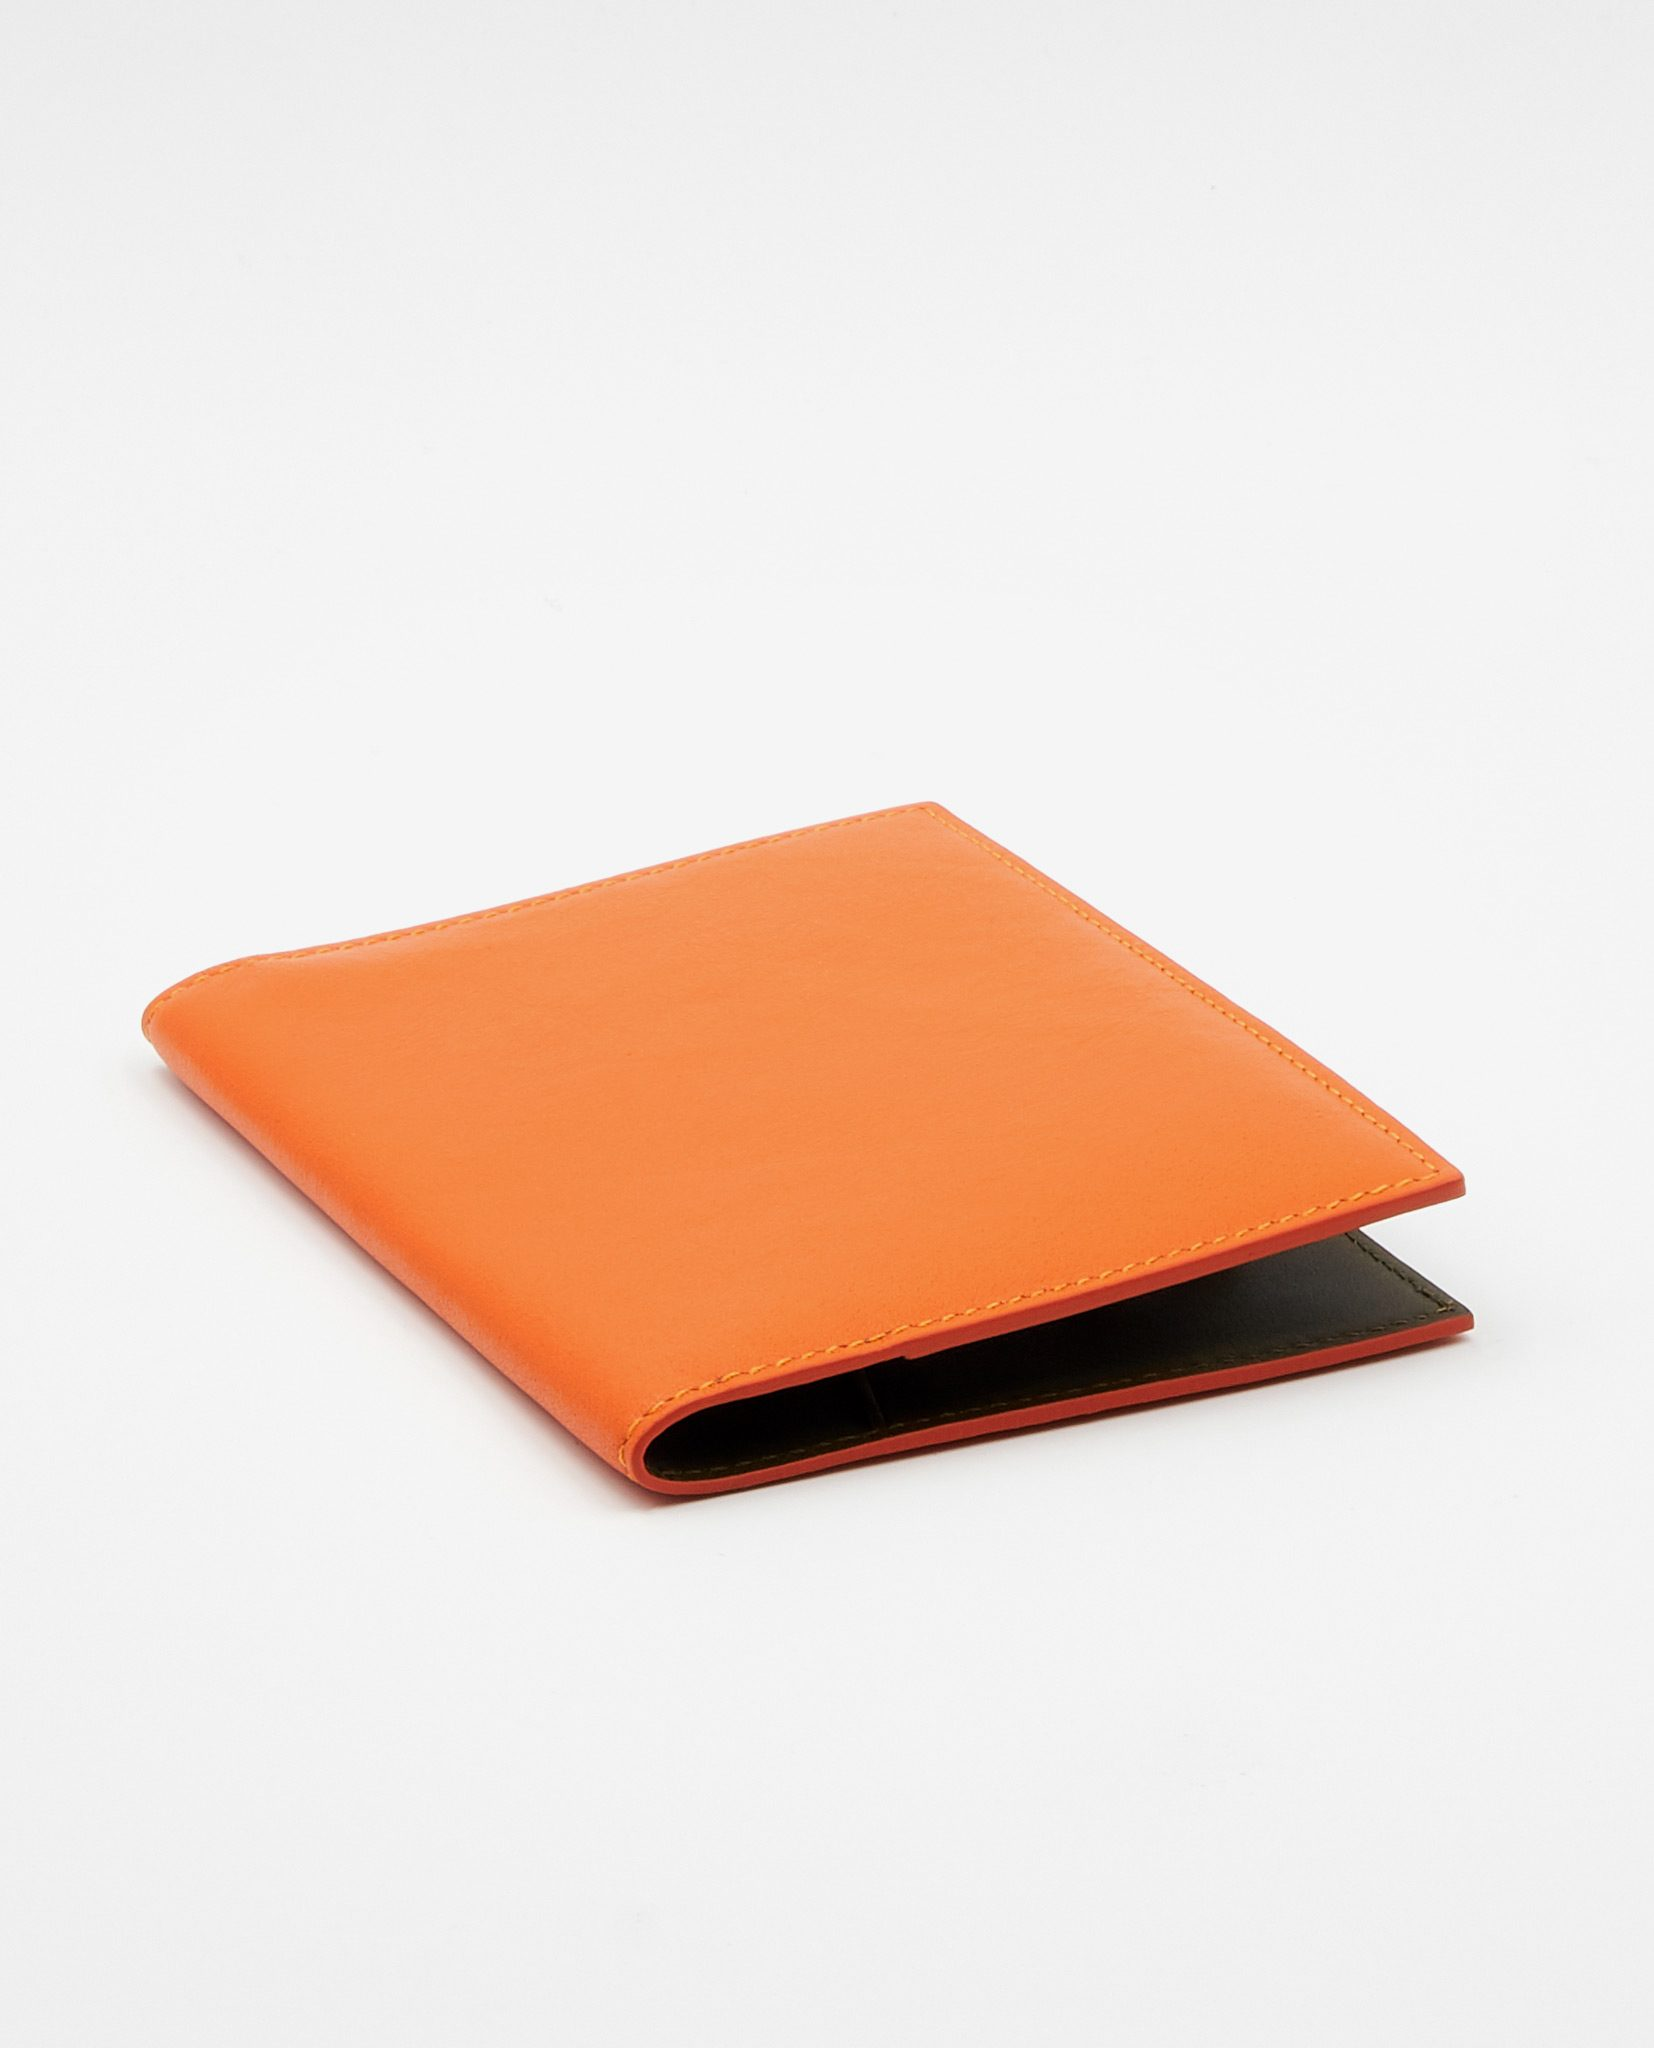 Soofre Smooth Leather Passport Holder Color Orange Khaki